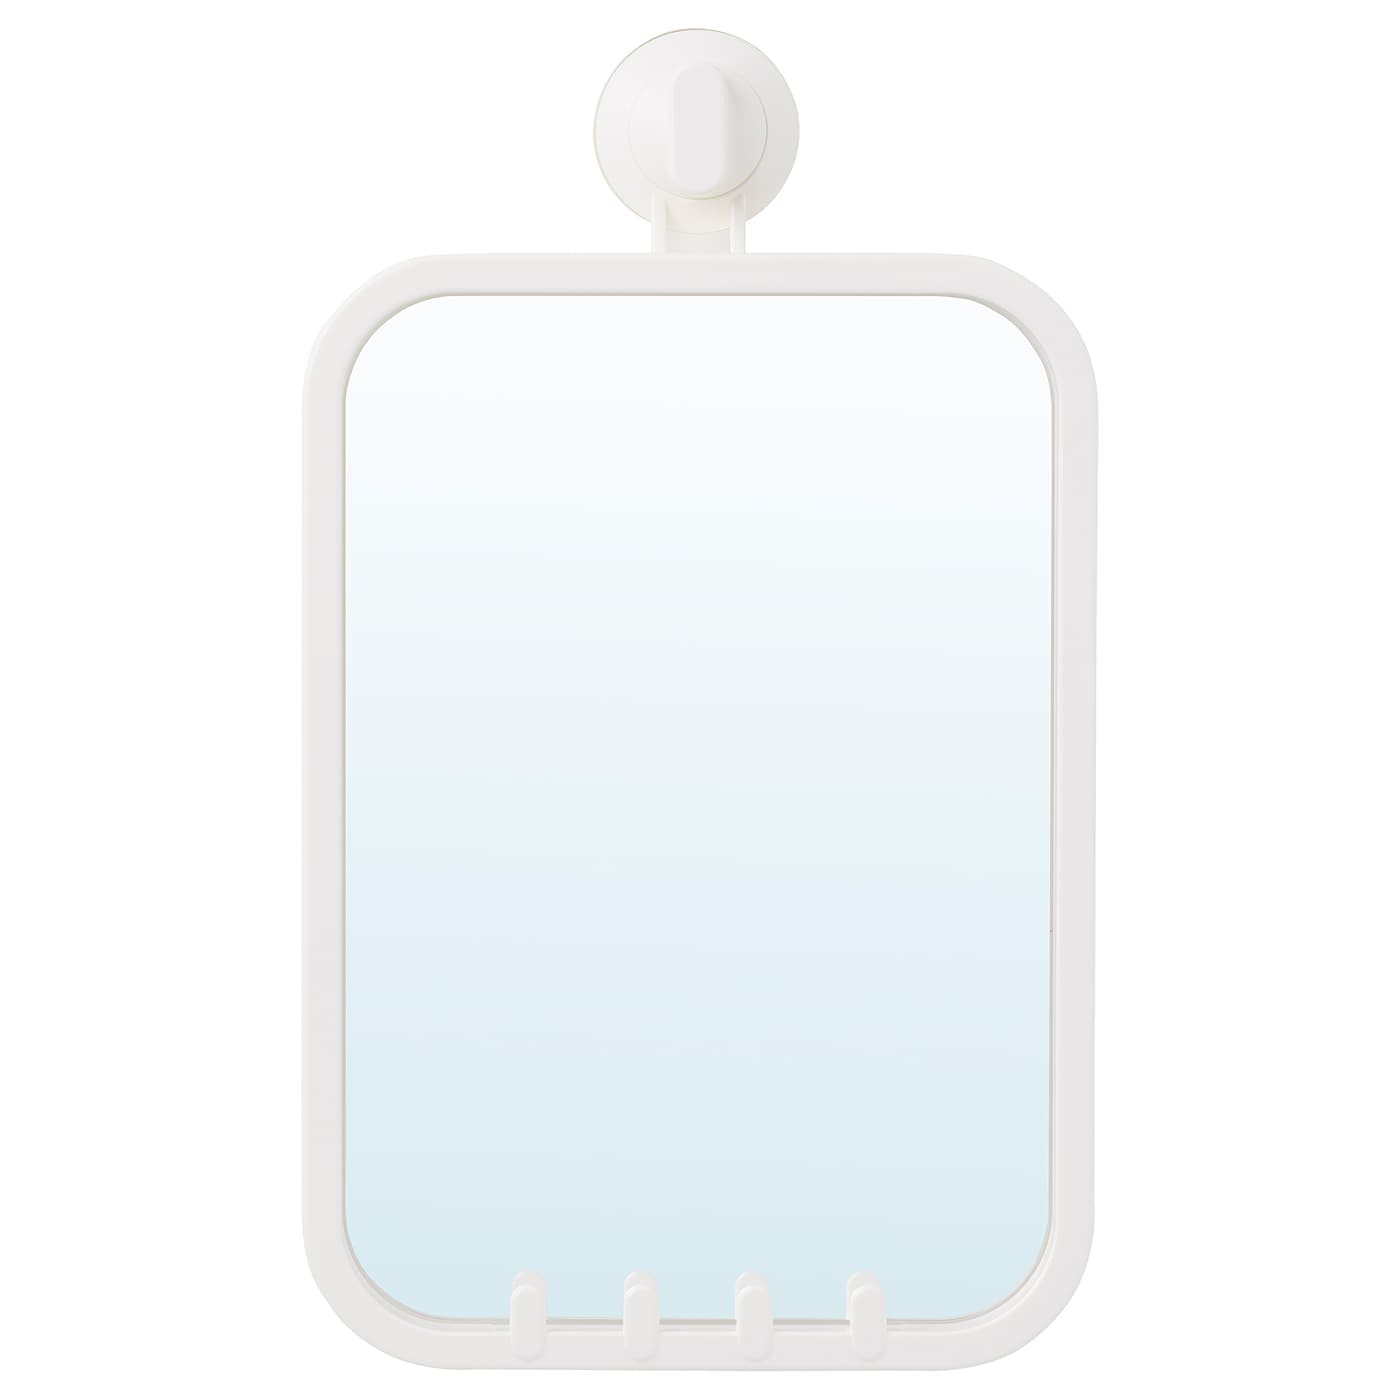 IKEA STUGVIK mirror with hooks and suction cup With a suction cup that grips smooth surfaces.